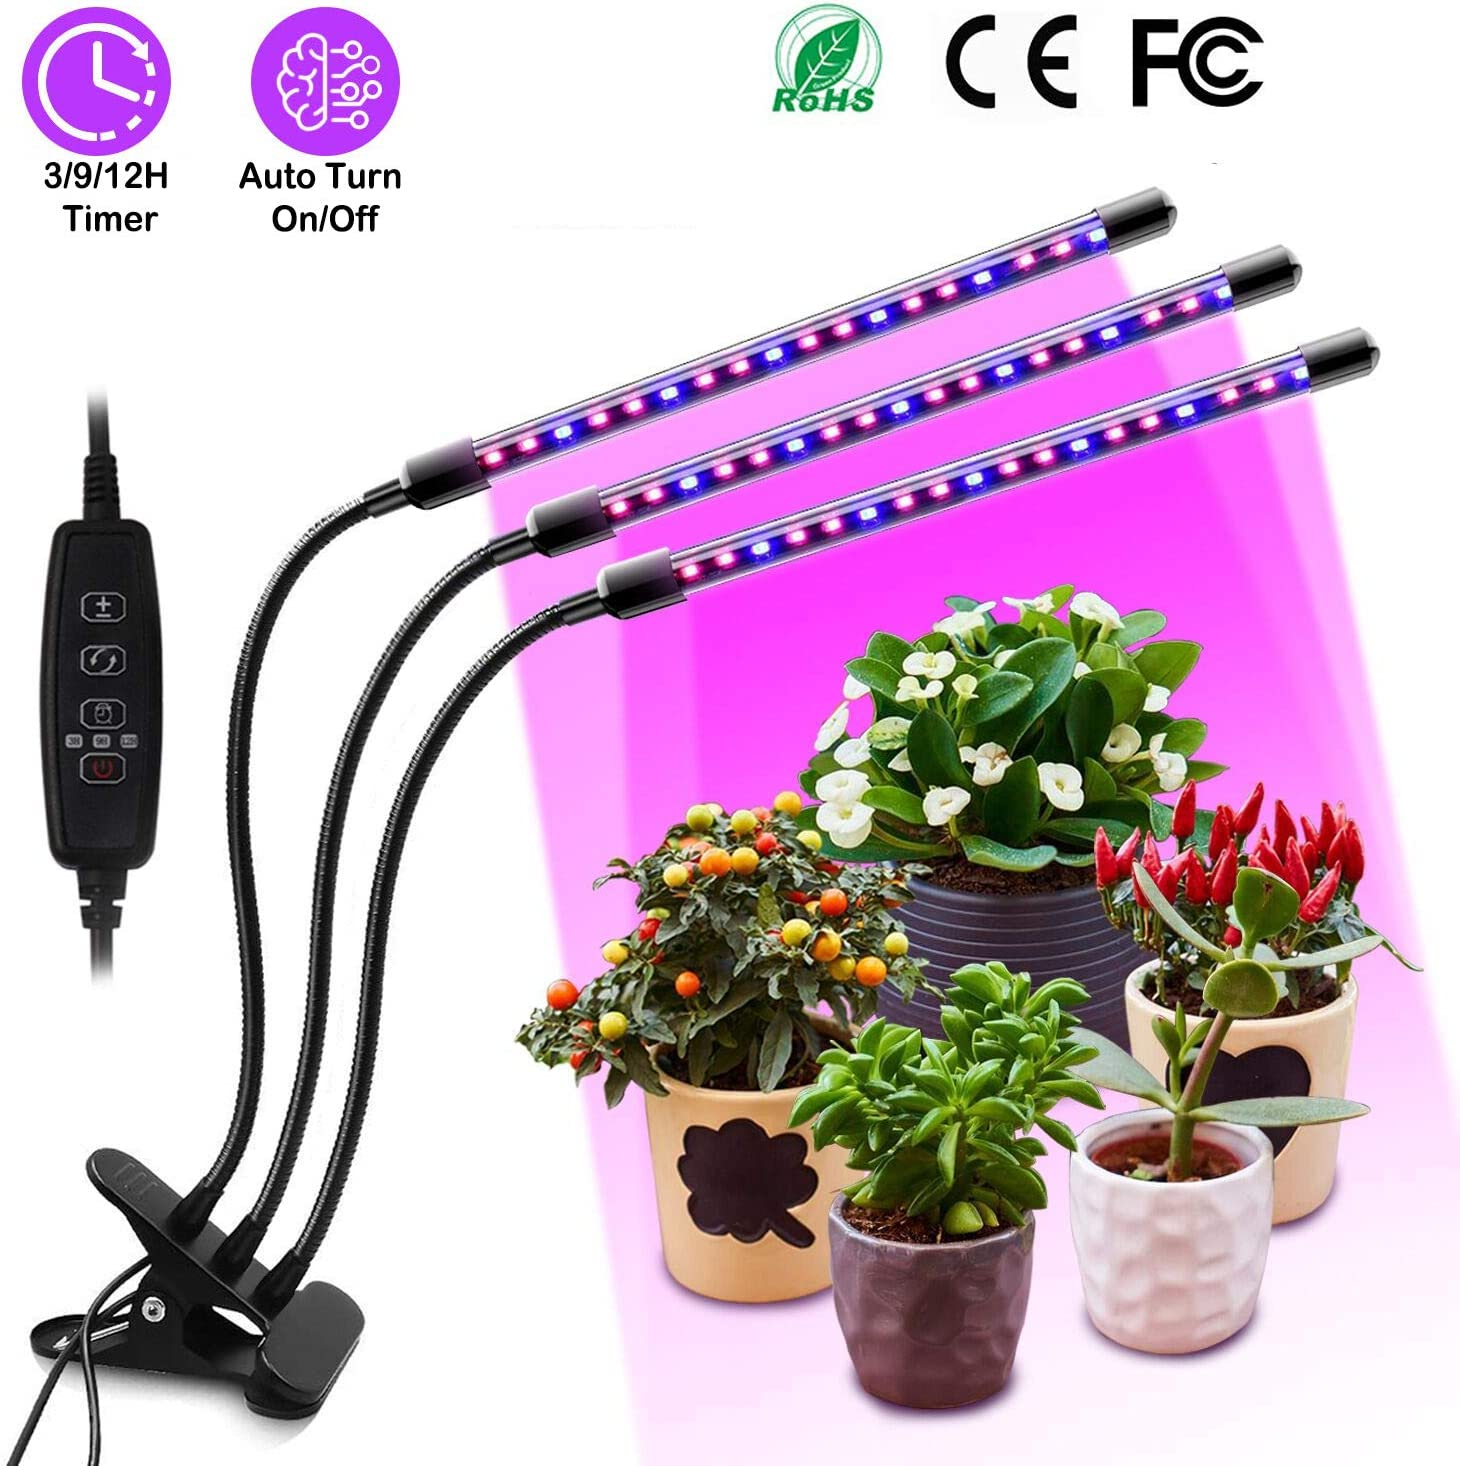 KIPRUN Plant Grow Light with Auto Turn On Off Function, 60 LED Plant Grow Lamp with 3 9 12H Timer, 3-Head Divide Control Adjustable Gooseneck, 10 Dimmable Levels for Indoor Plants 2019 Upgraded